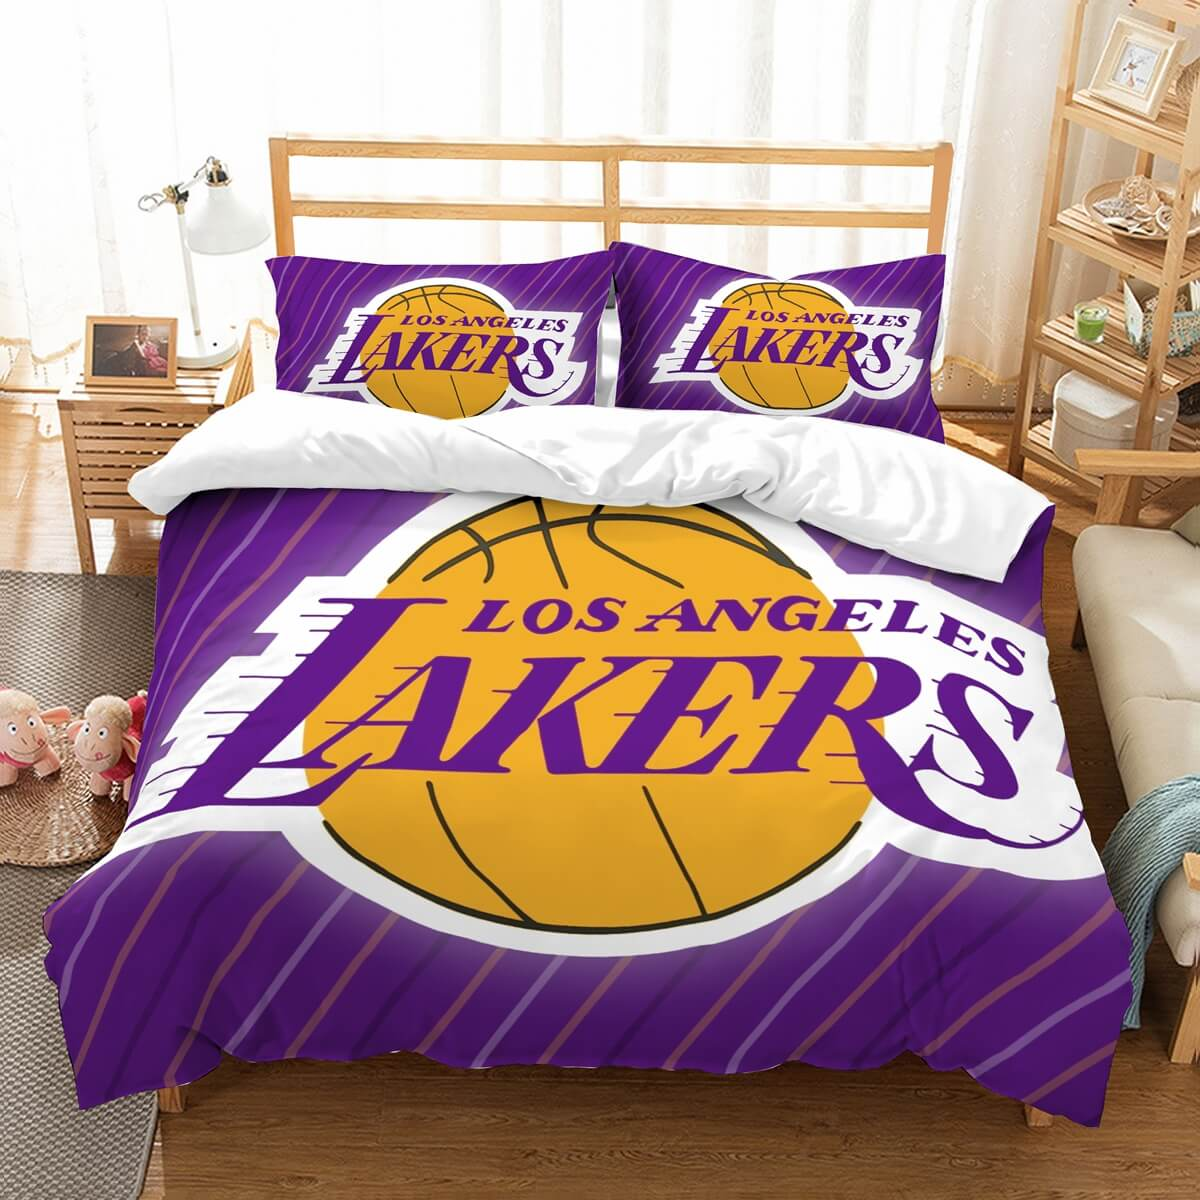 3D Customize Los Angeles Lakers Bedding Set Duvet Cover Set Bedroom Set Bedlinen